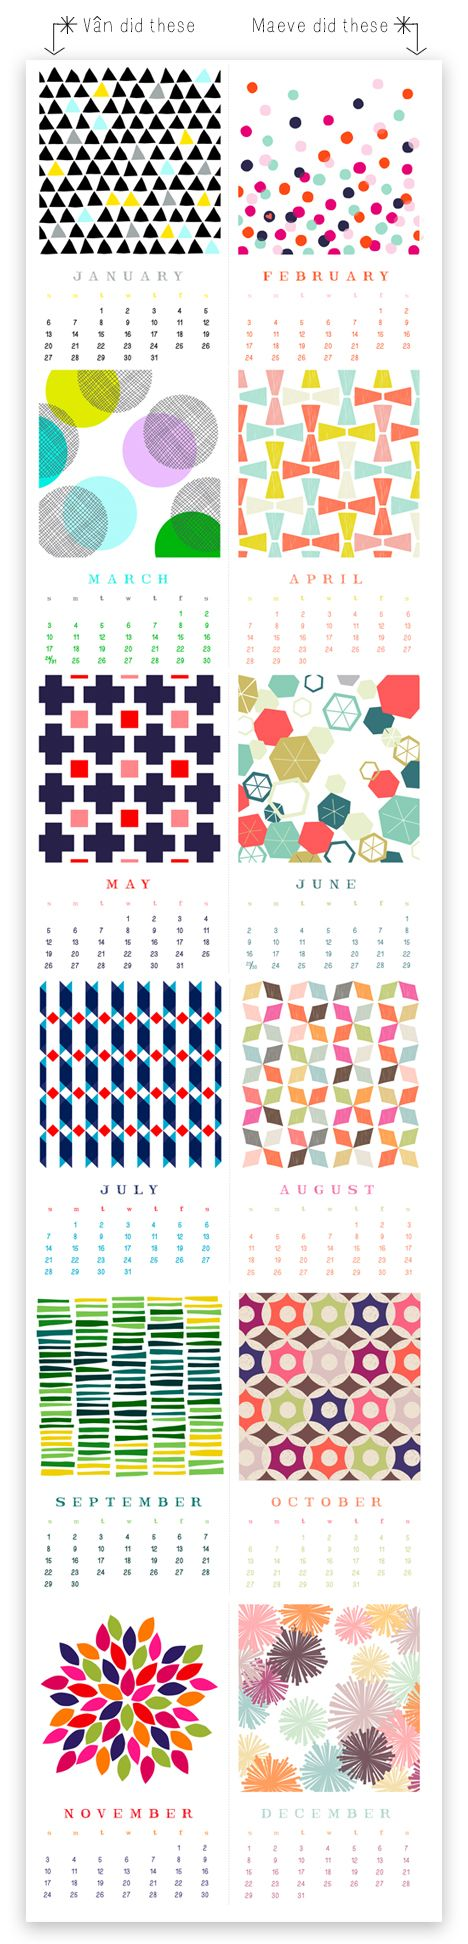 Free 2013 calendar by Vân Tran Monnier of http://rhymeswithfun.blogspot.com/ and Maeve Parker of www.maeveparker.com.